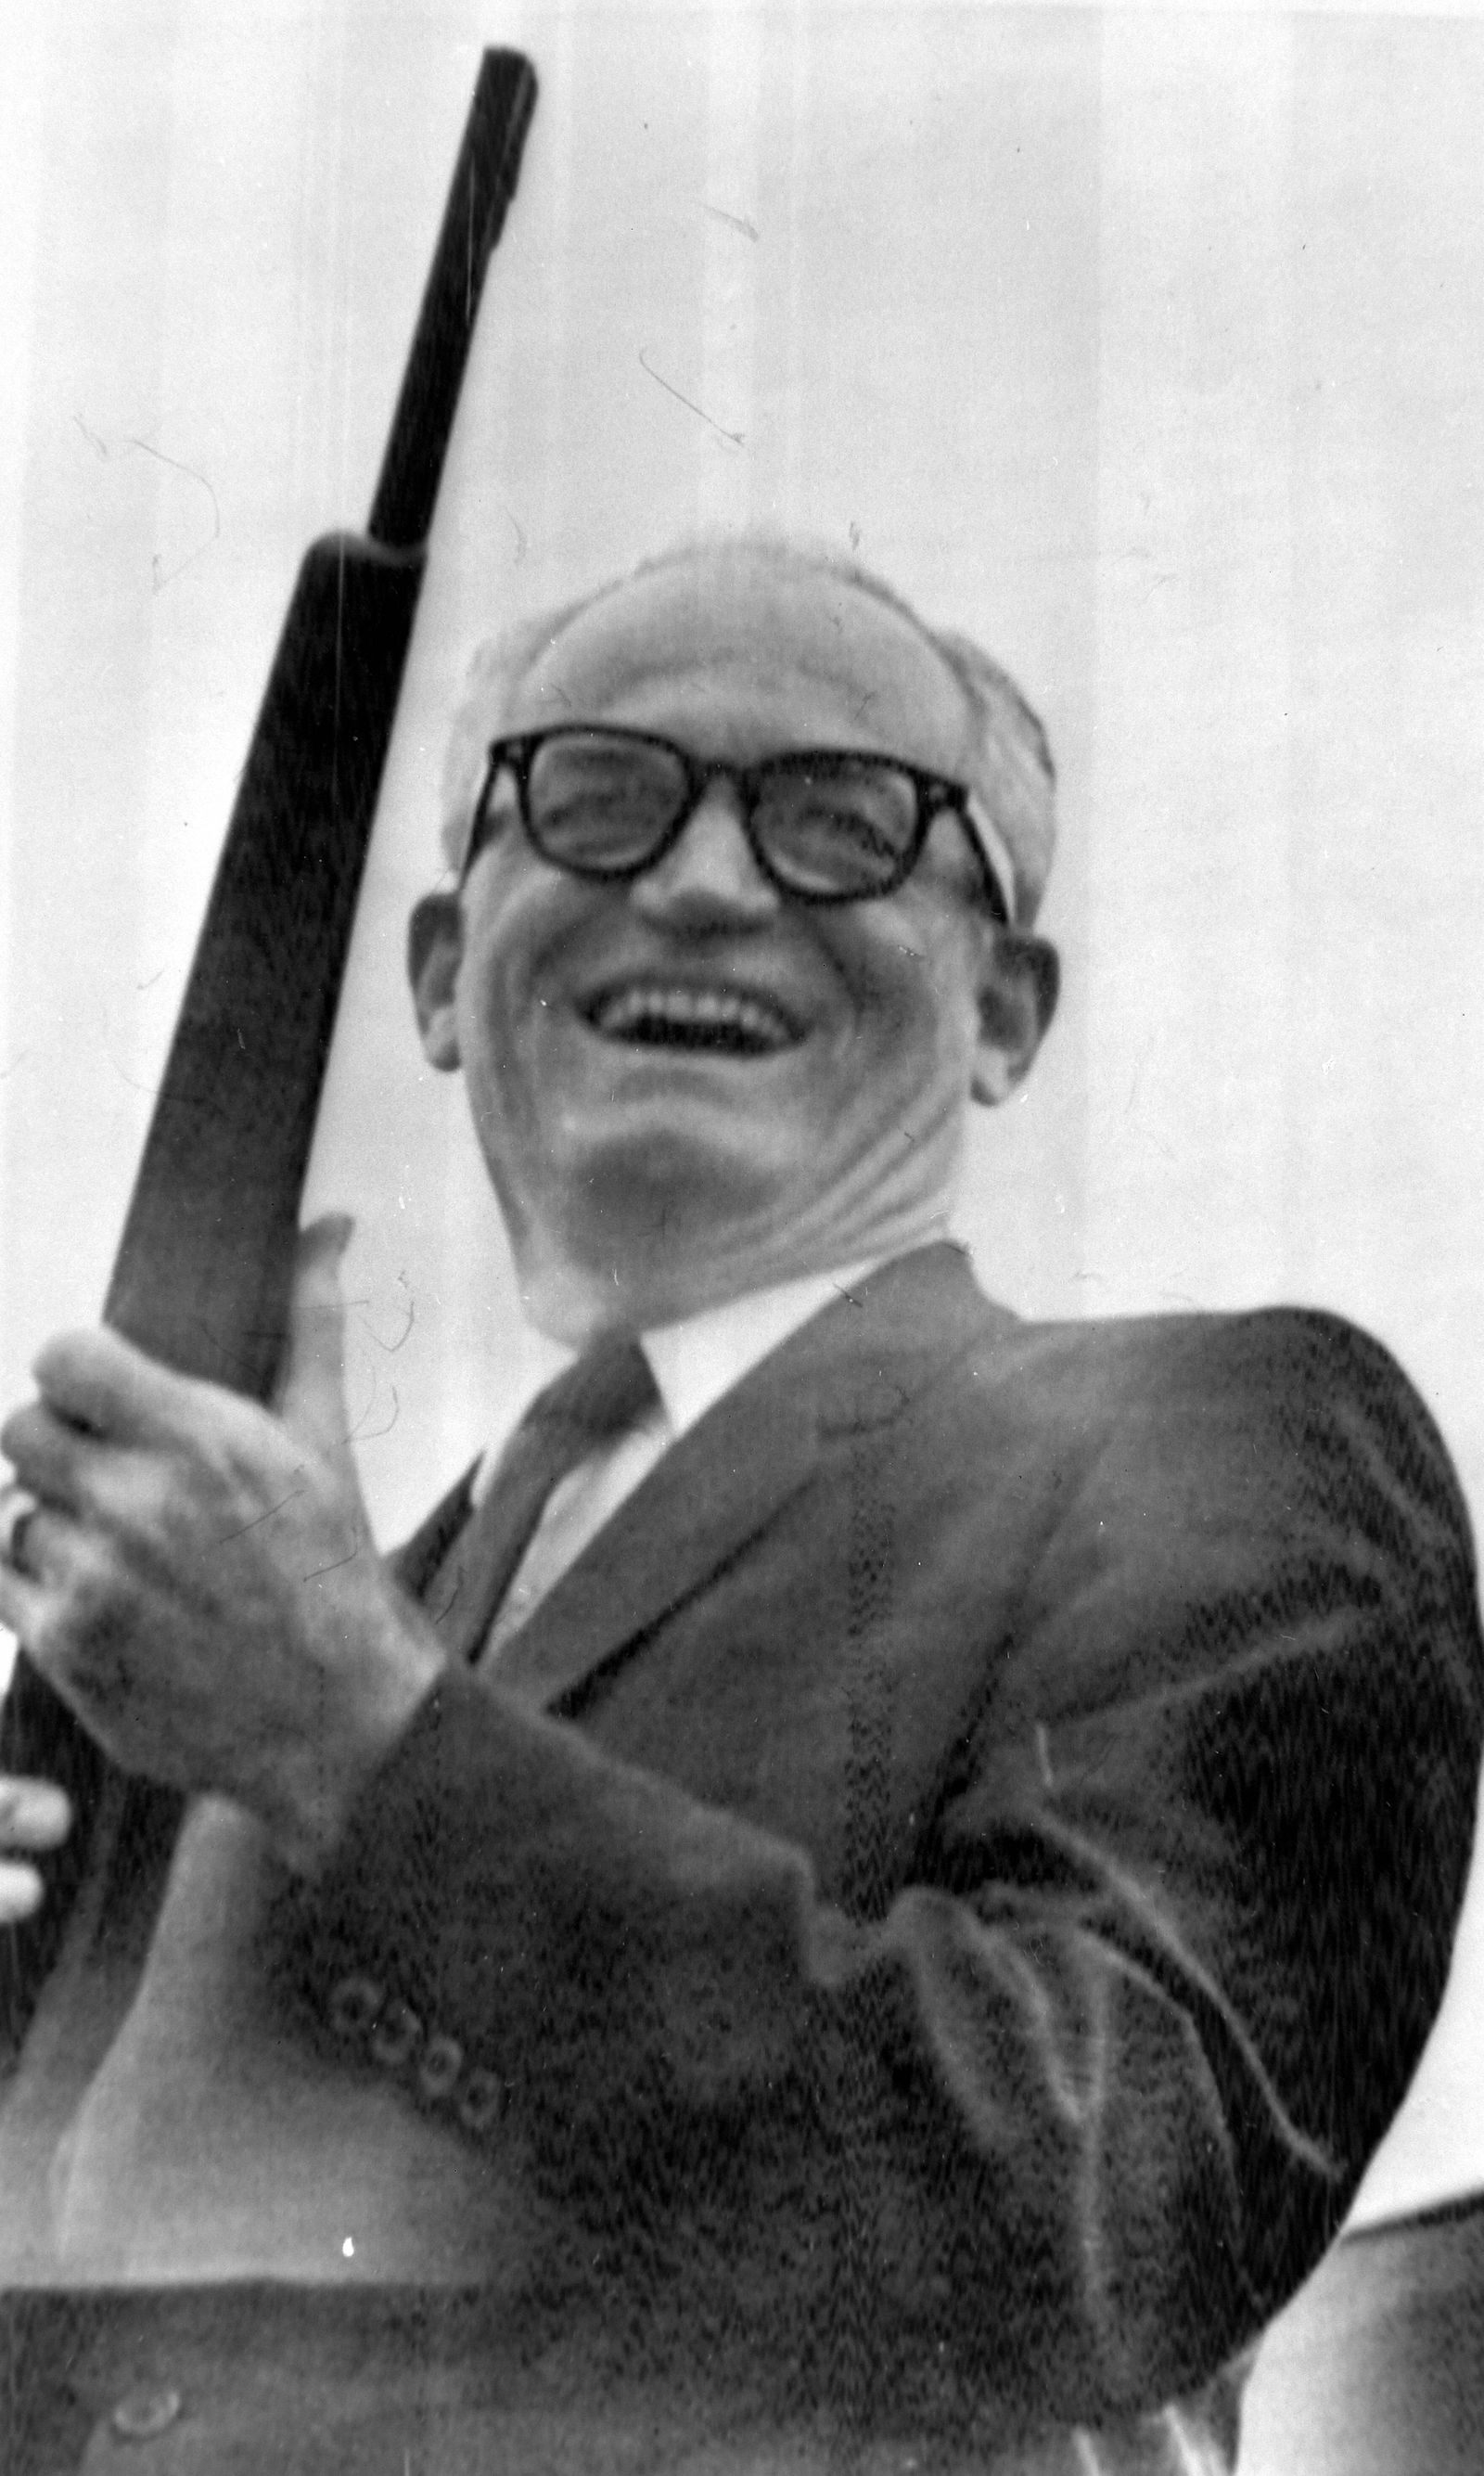 SENATOR BARRY GOLDWATER WITH 6MM RIFLE AT GREAT FALLS MONTAINN 11 SEPTEMBER 1964 Copyright Top